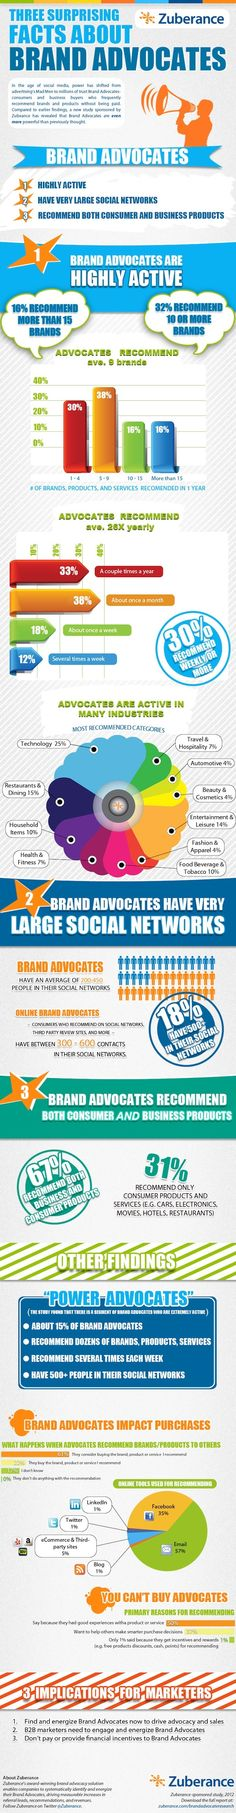 Three-Surprising-Facts-About-Brand-Advocates